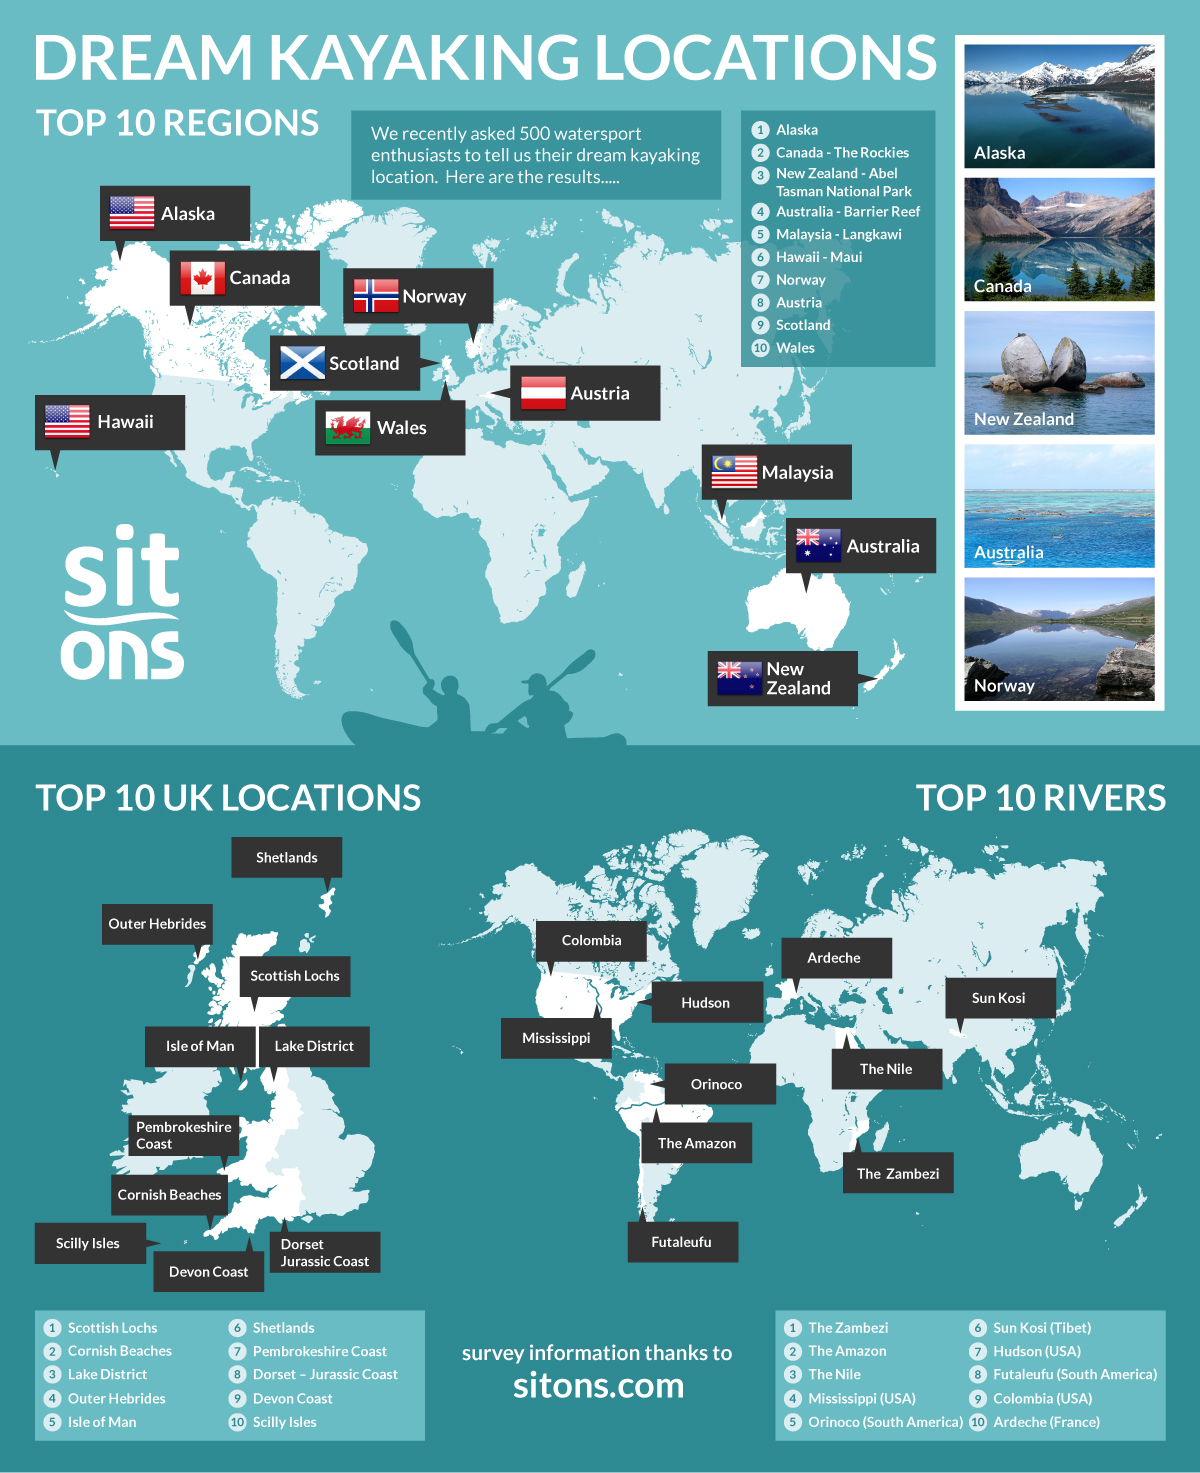 Dream Kayaking Locations - The Infographic